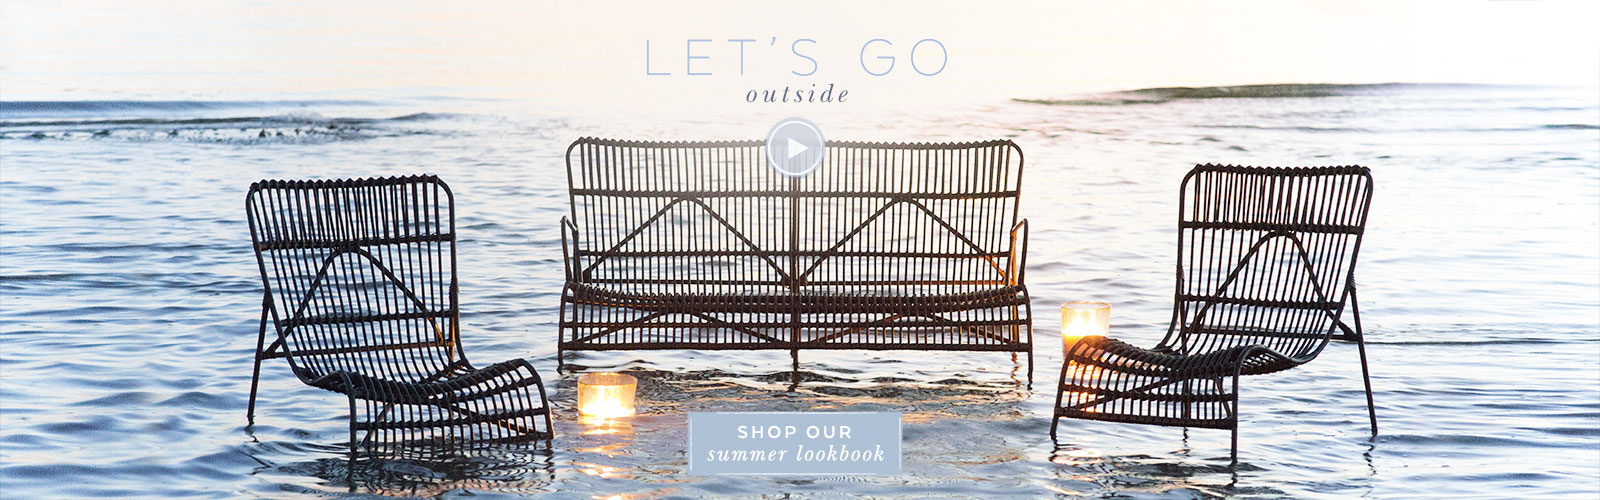 let's go outside | shop the summer living lookbook